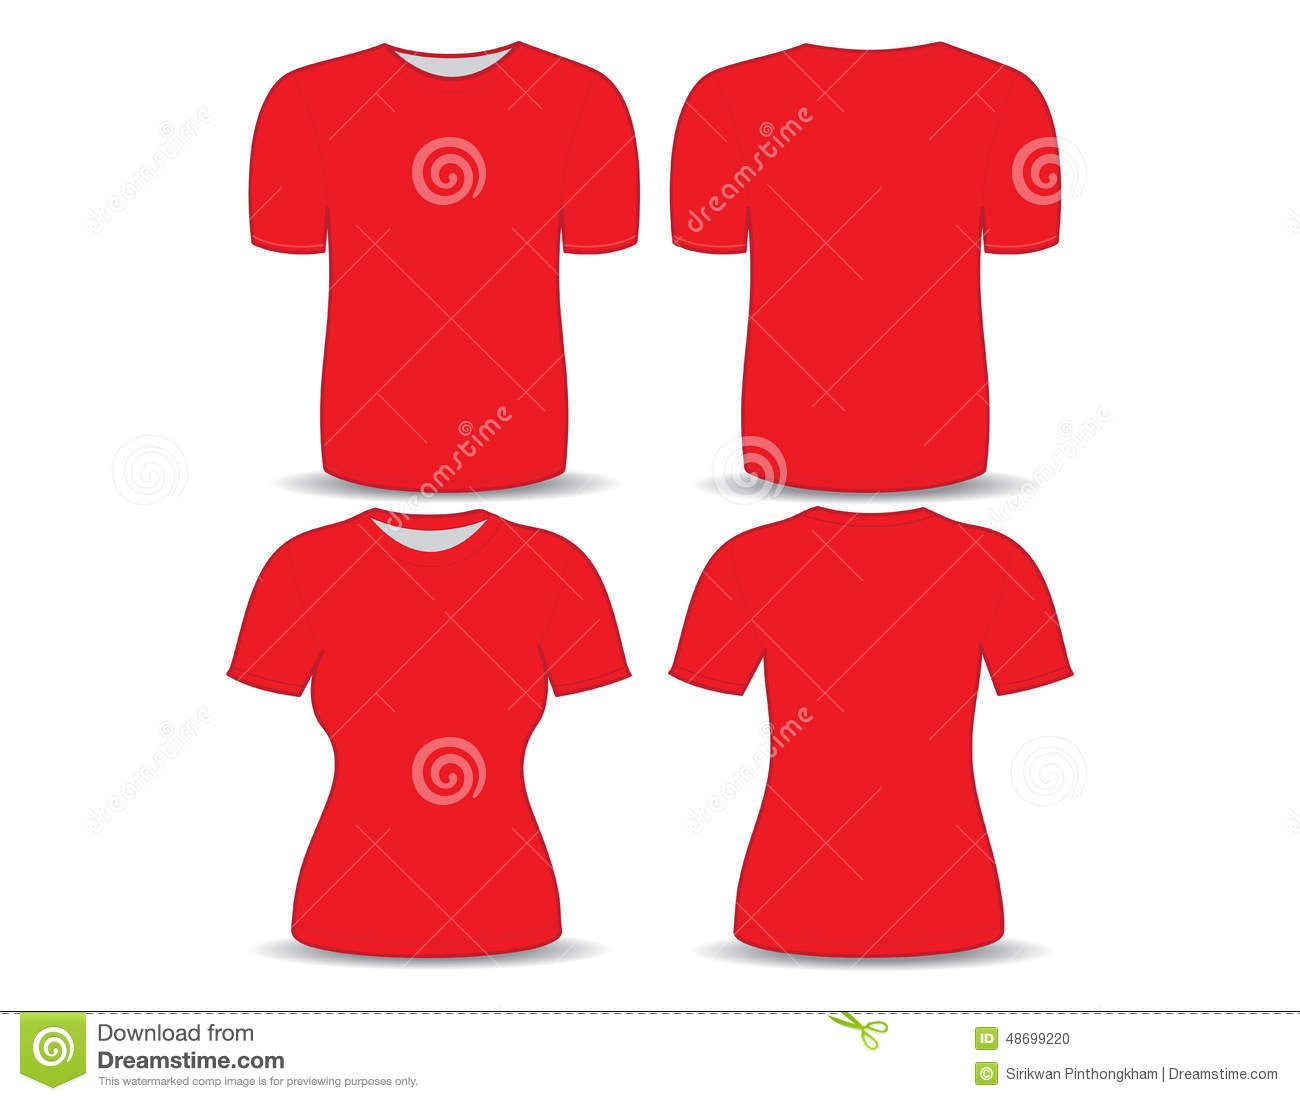 Zazzle t shirt design template - Red T Shirt Template Stock Vector Image 46751049